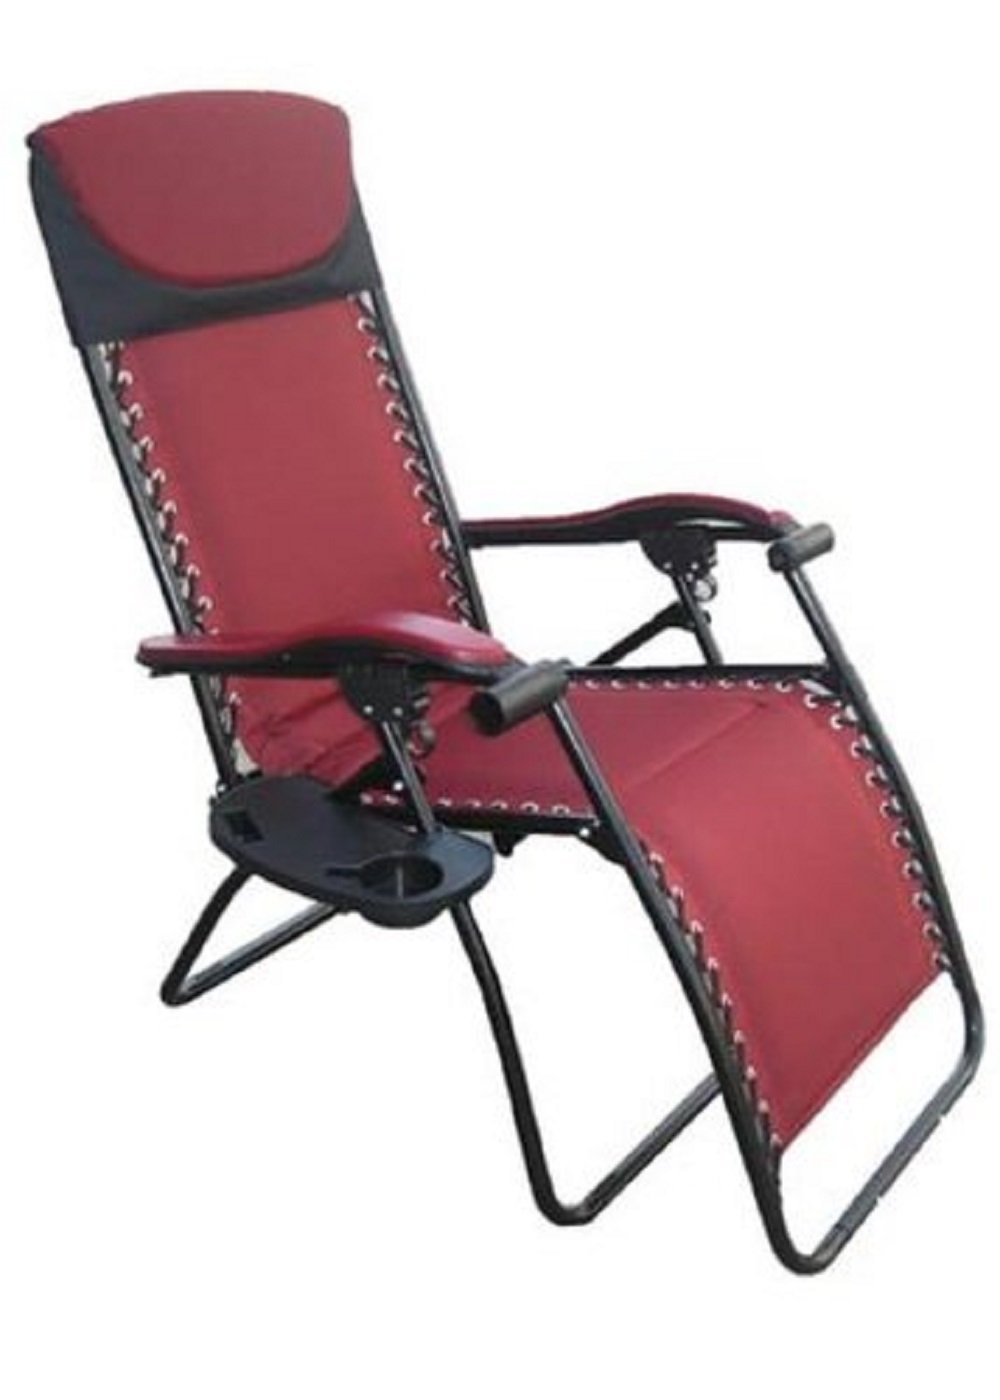 Extra large zero gravity chair - Amazon Com Wilcor Deluxe Large Zero Gravity Fully Reclining Lounge Patio Folding Chair Burgandy Red Garden Outdoor